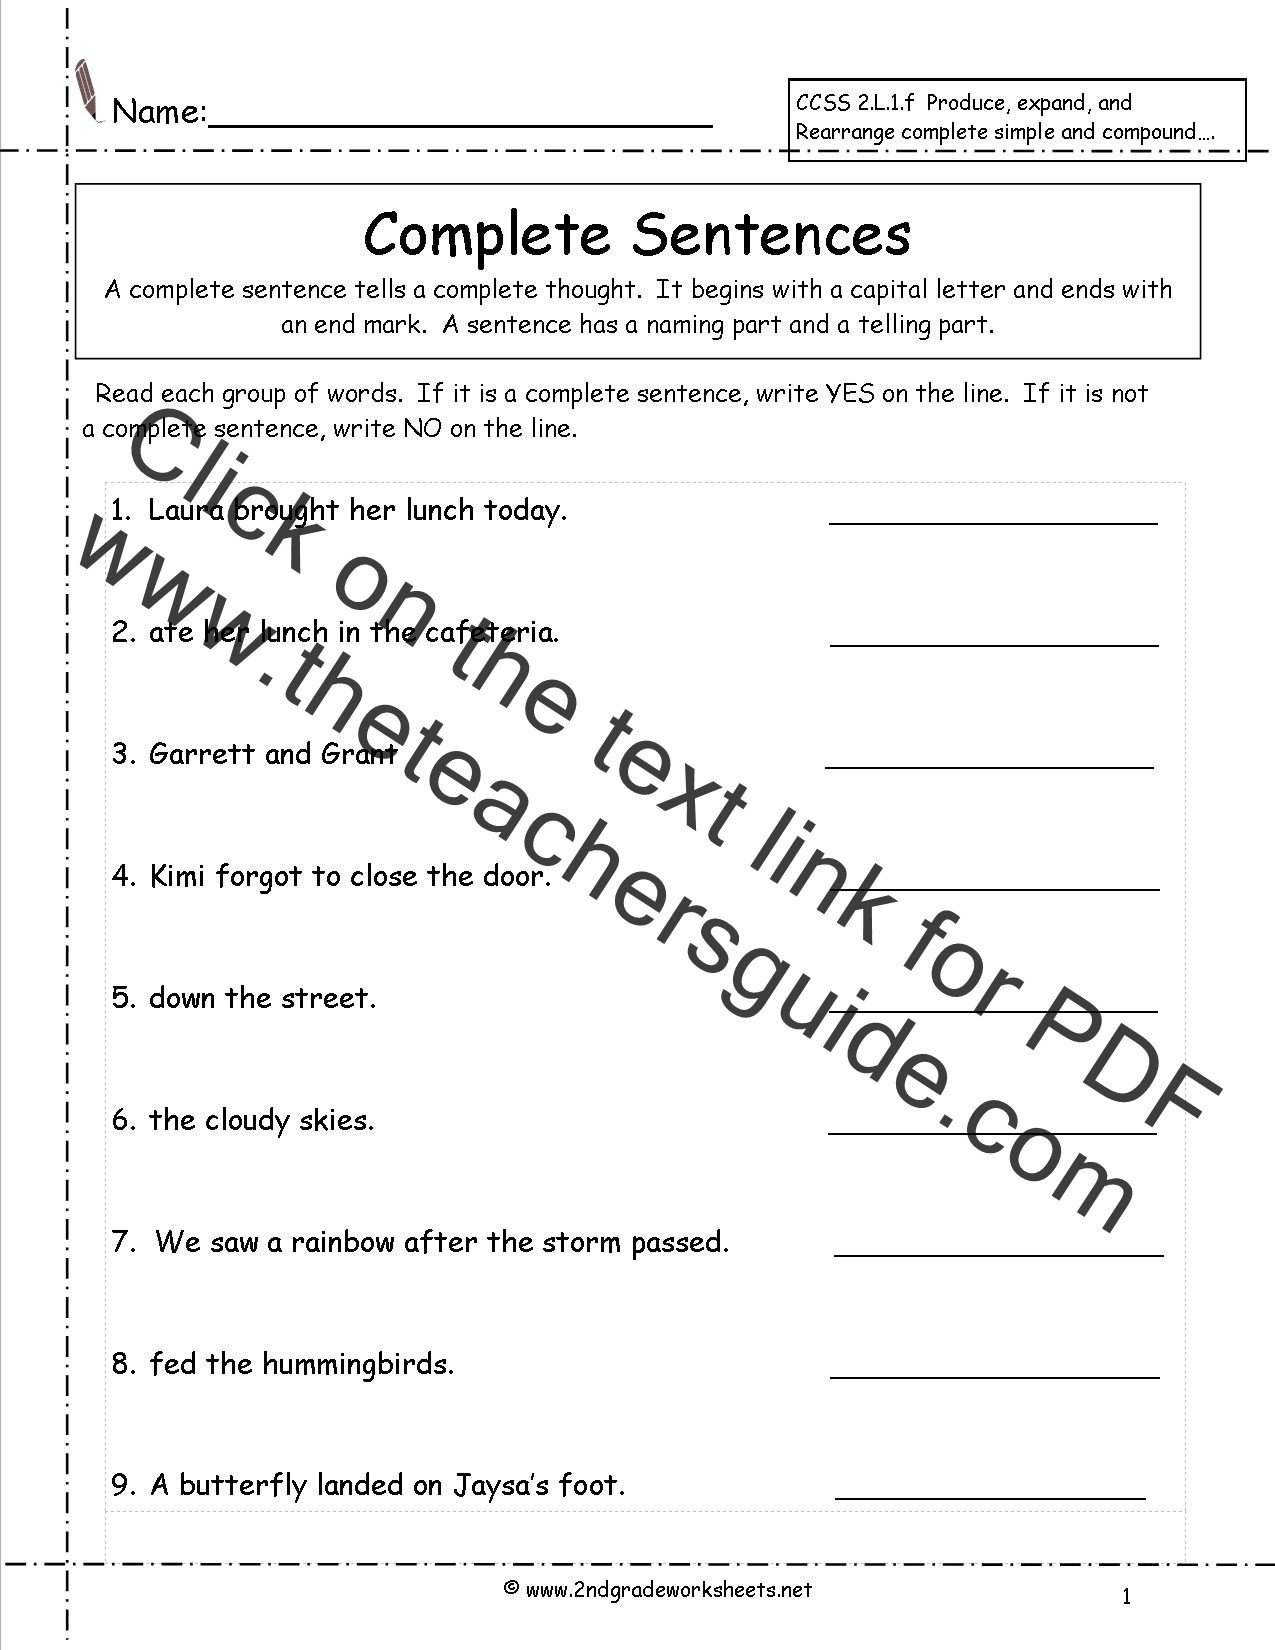 Super Sentences Worksheets Second Grade Sentences Worksheets Ccss 2 L 1 F Worksheets